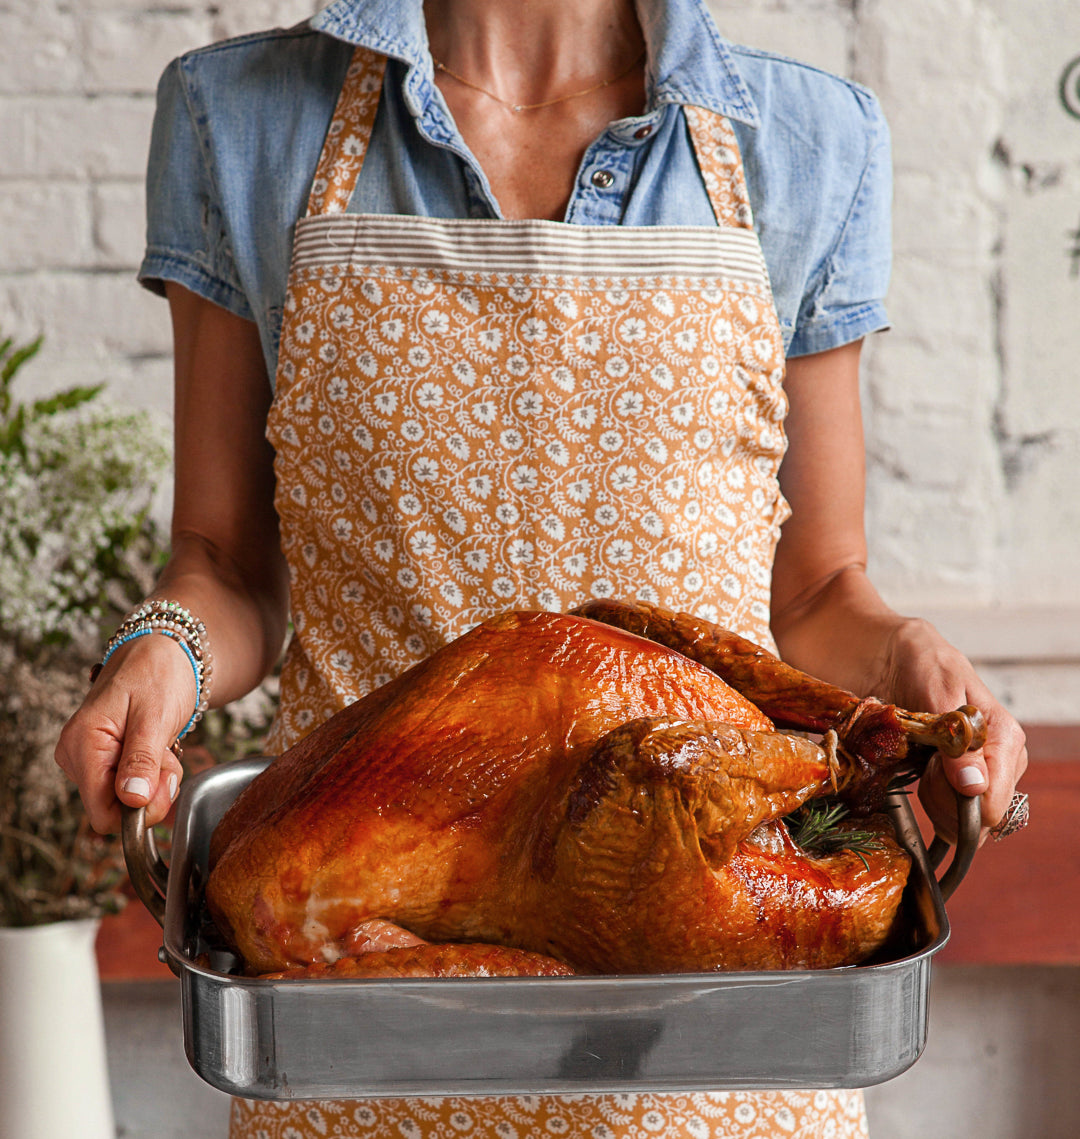 Our Top Five Cooking Tips for the Best Heritage Turkey